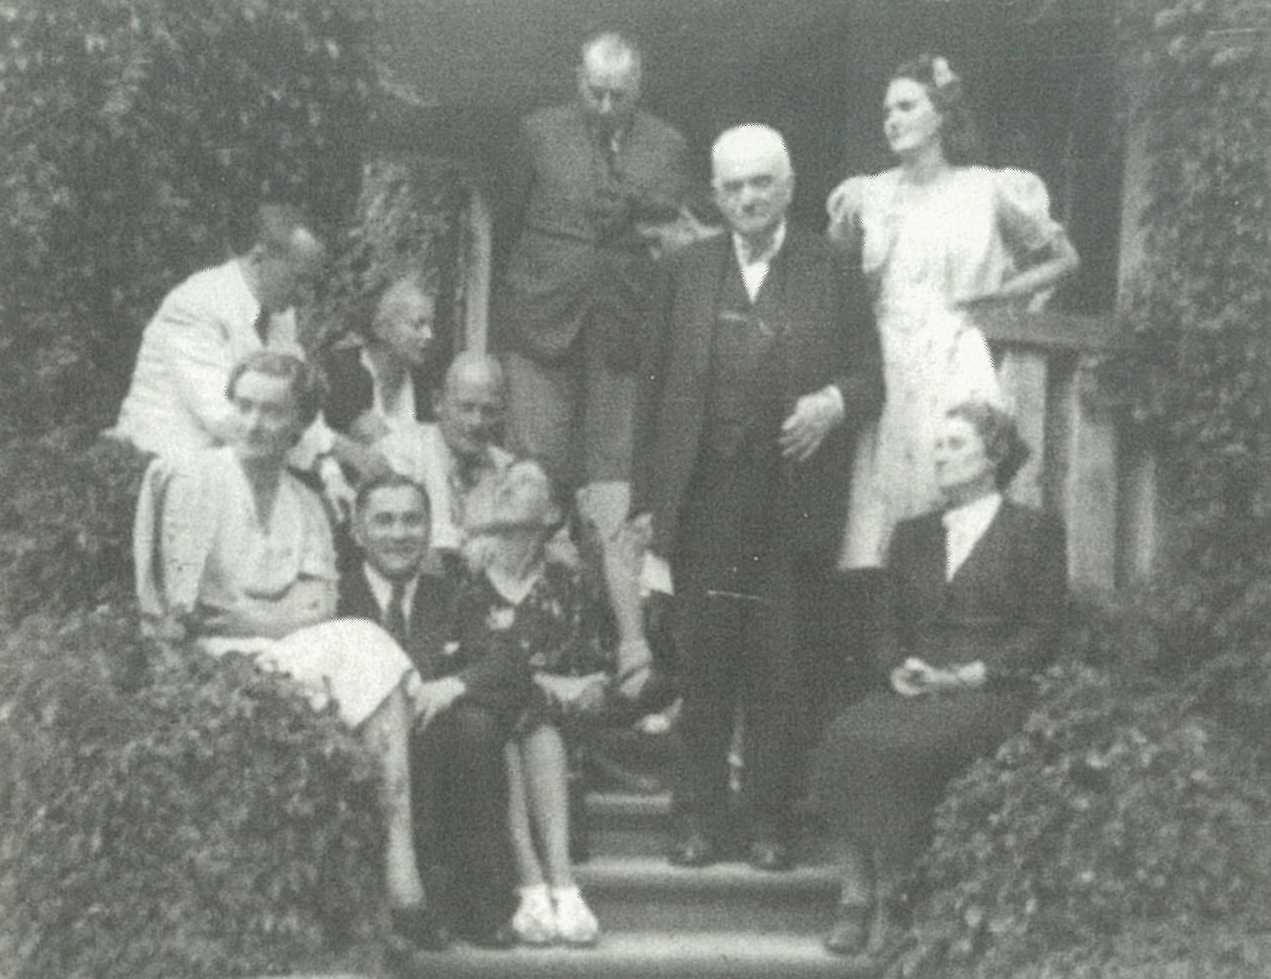 1940 - The Hall serves as a place of refuge to many eminent Poles who fled persecution, including Irena Anders